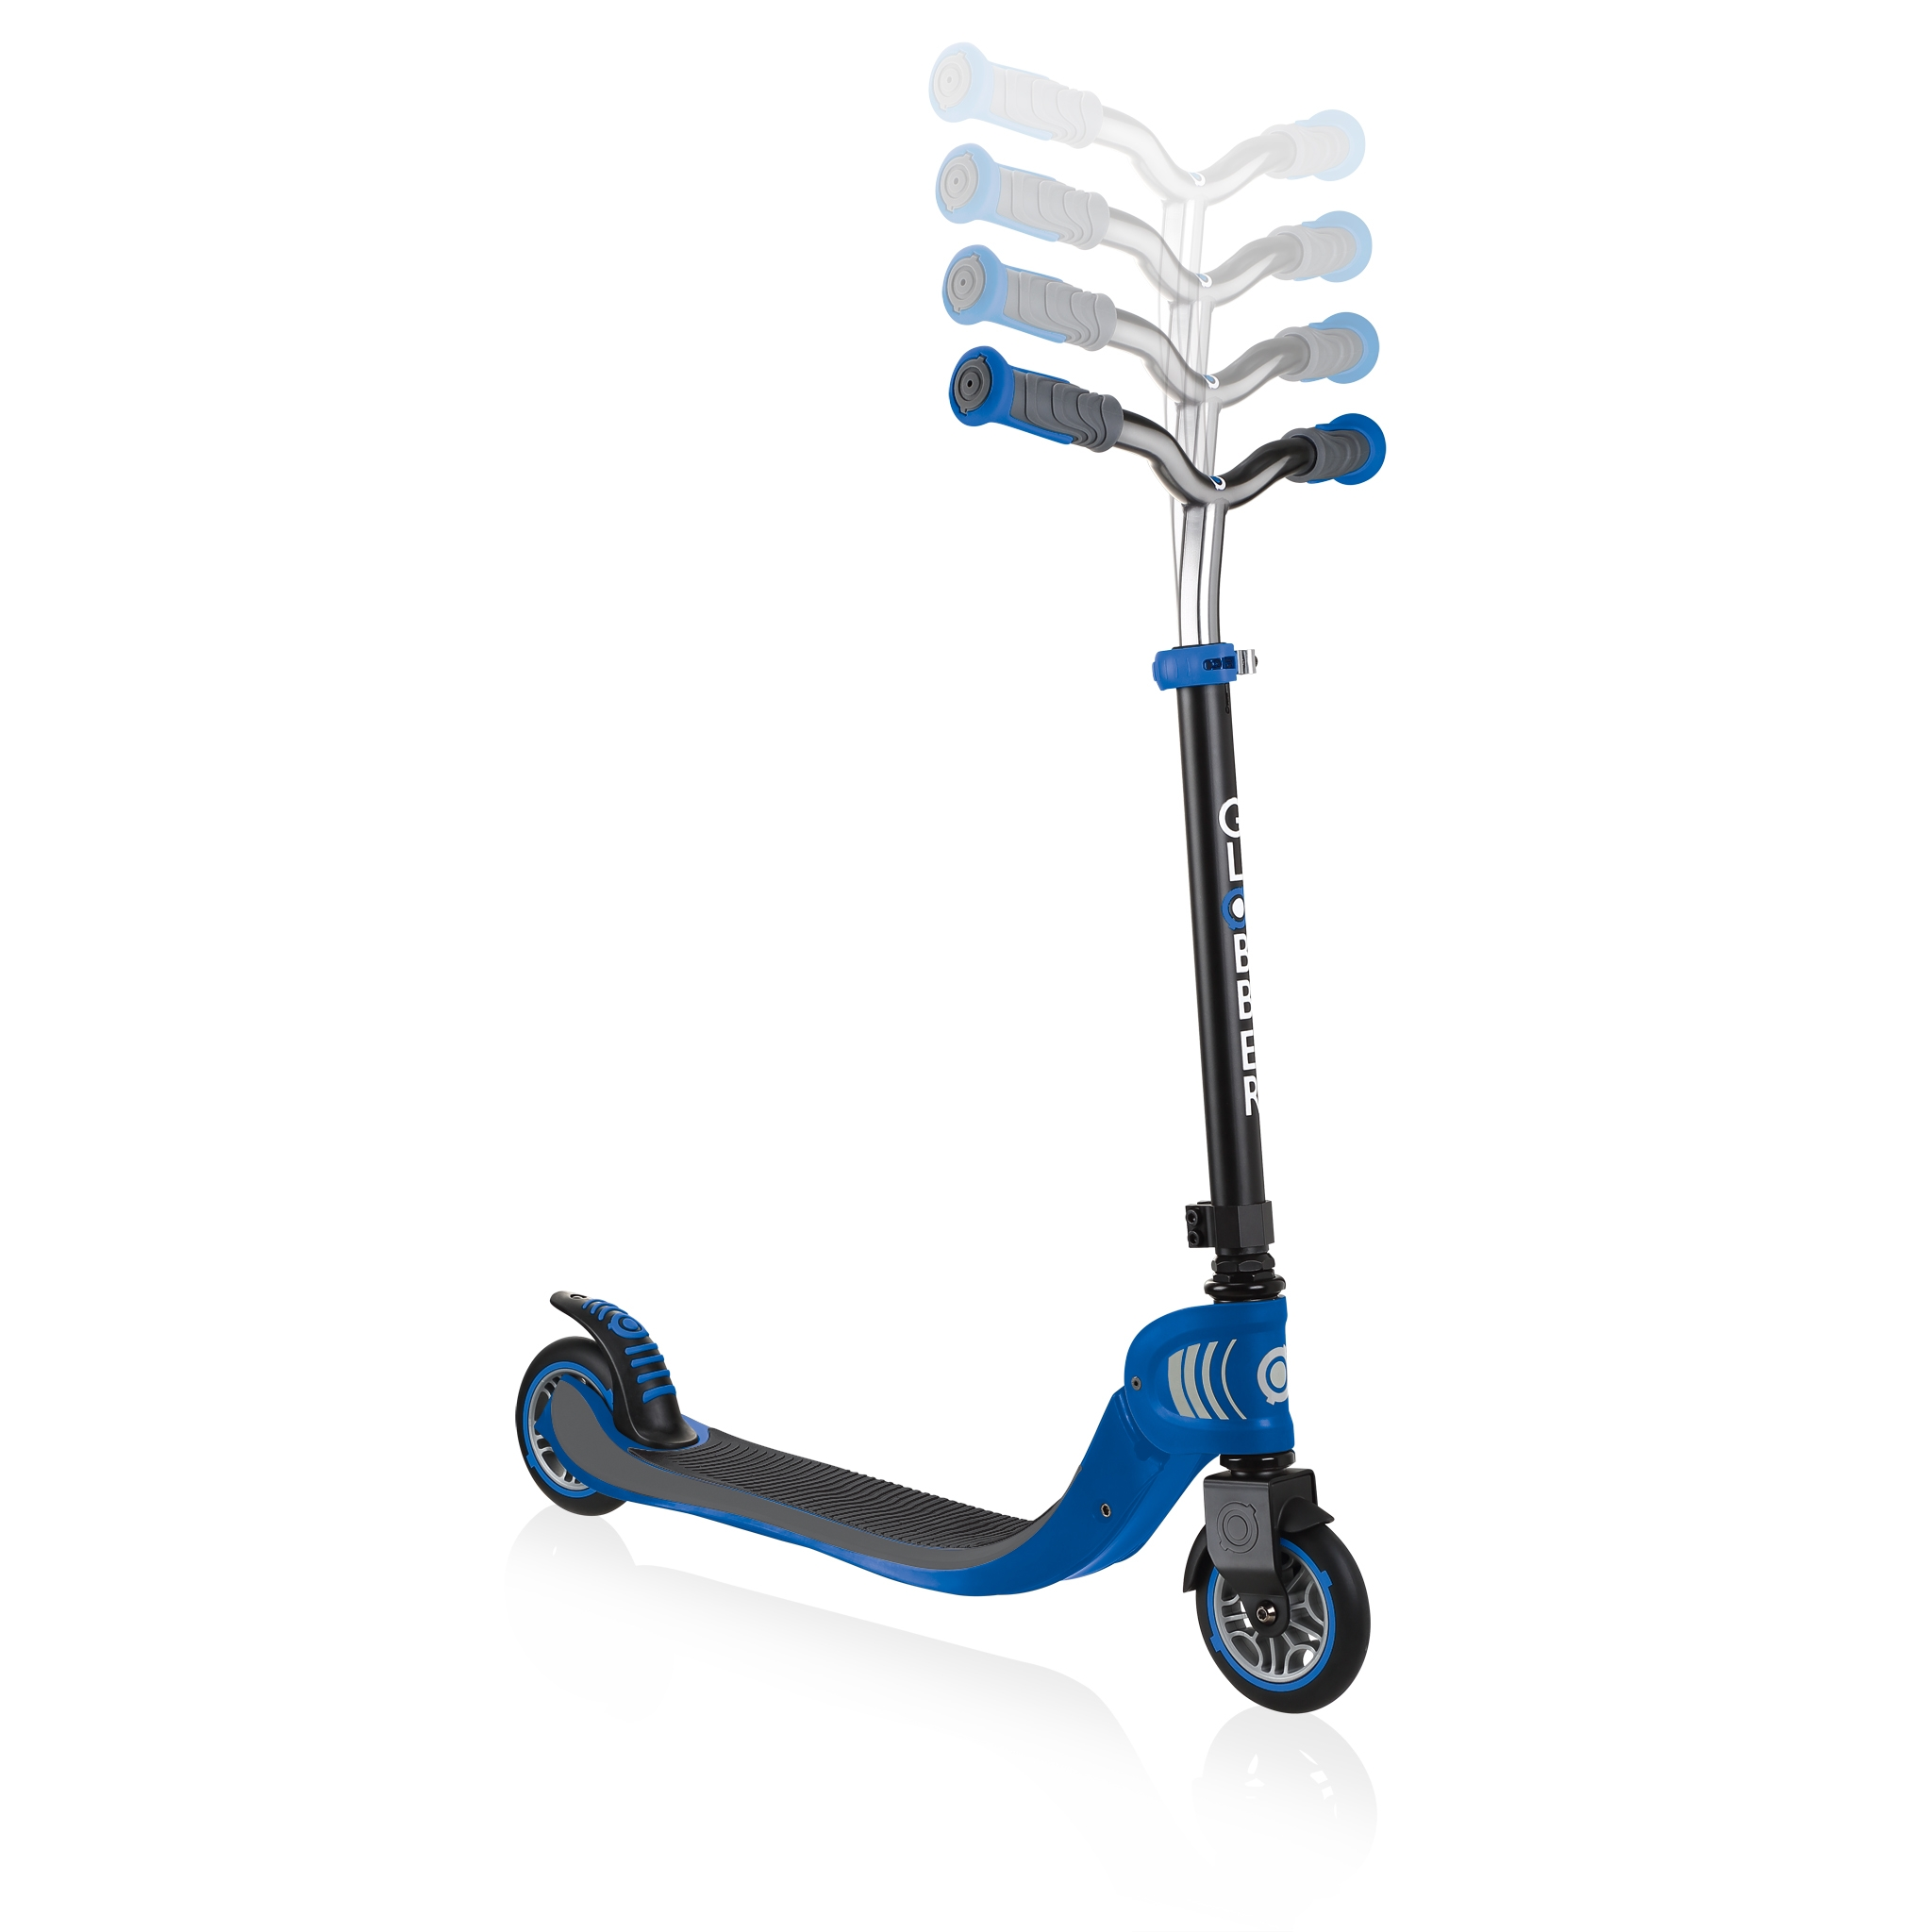 FLOW-FOLDABLE-125-2-wheel-scooter-for-kids-with-adjustable-t-bar-navy-blue 1